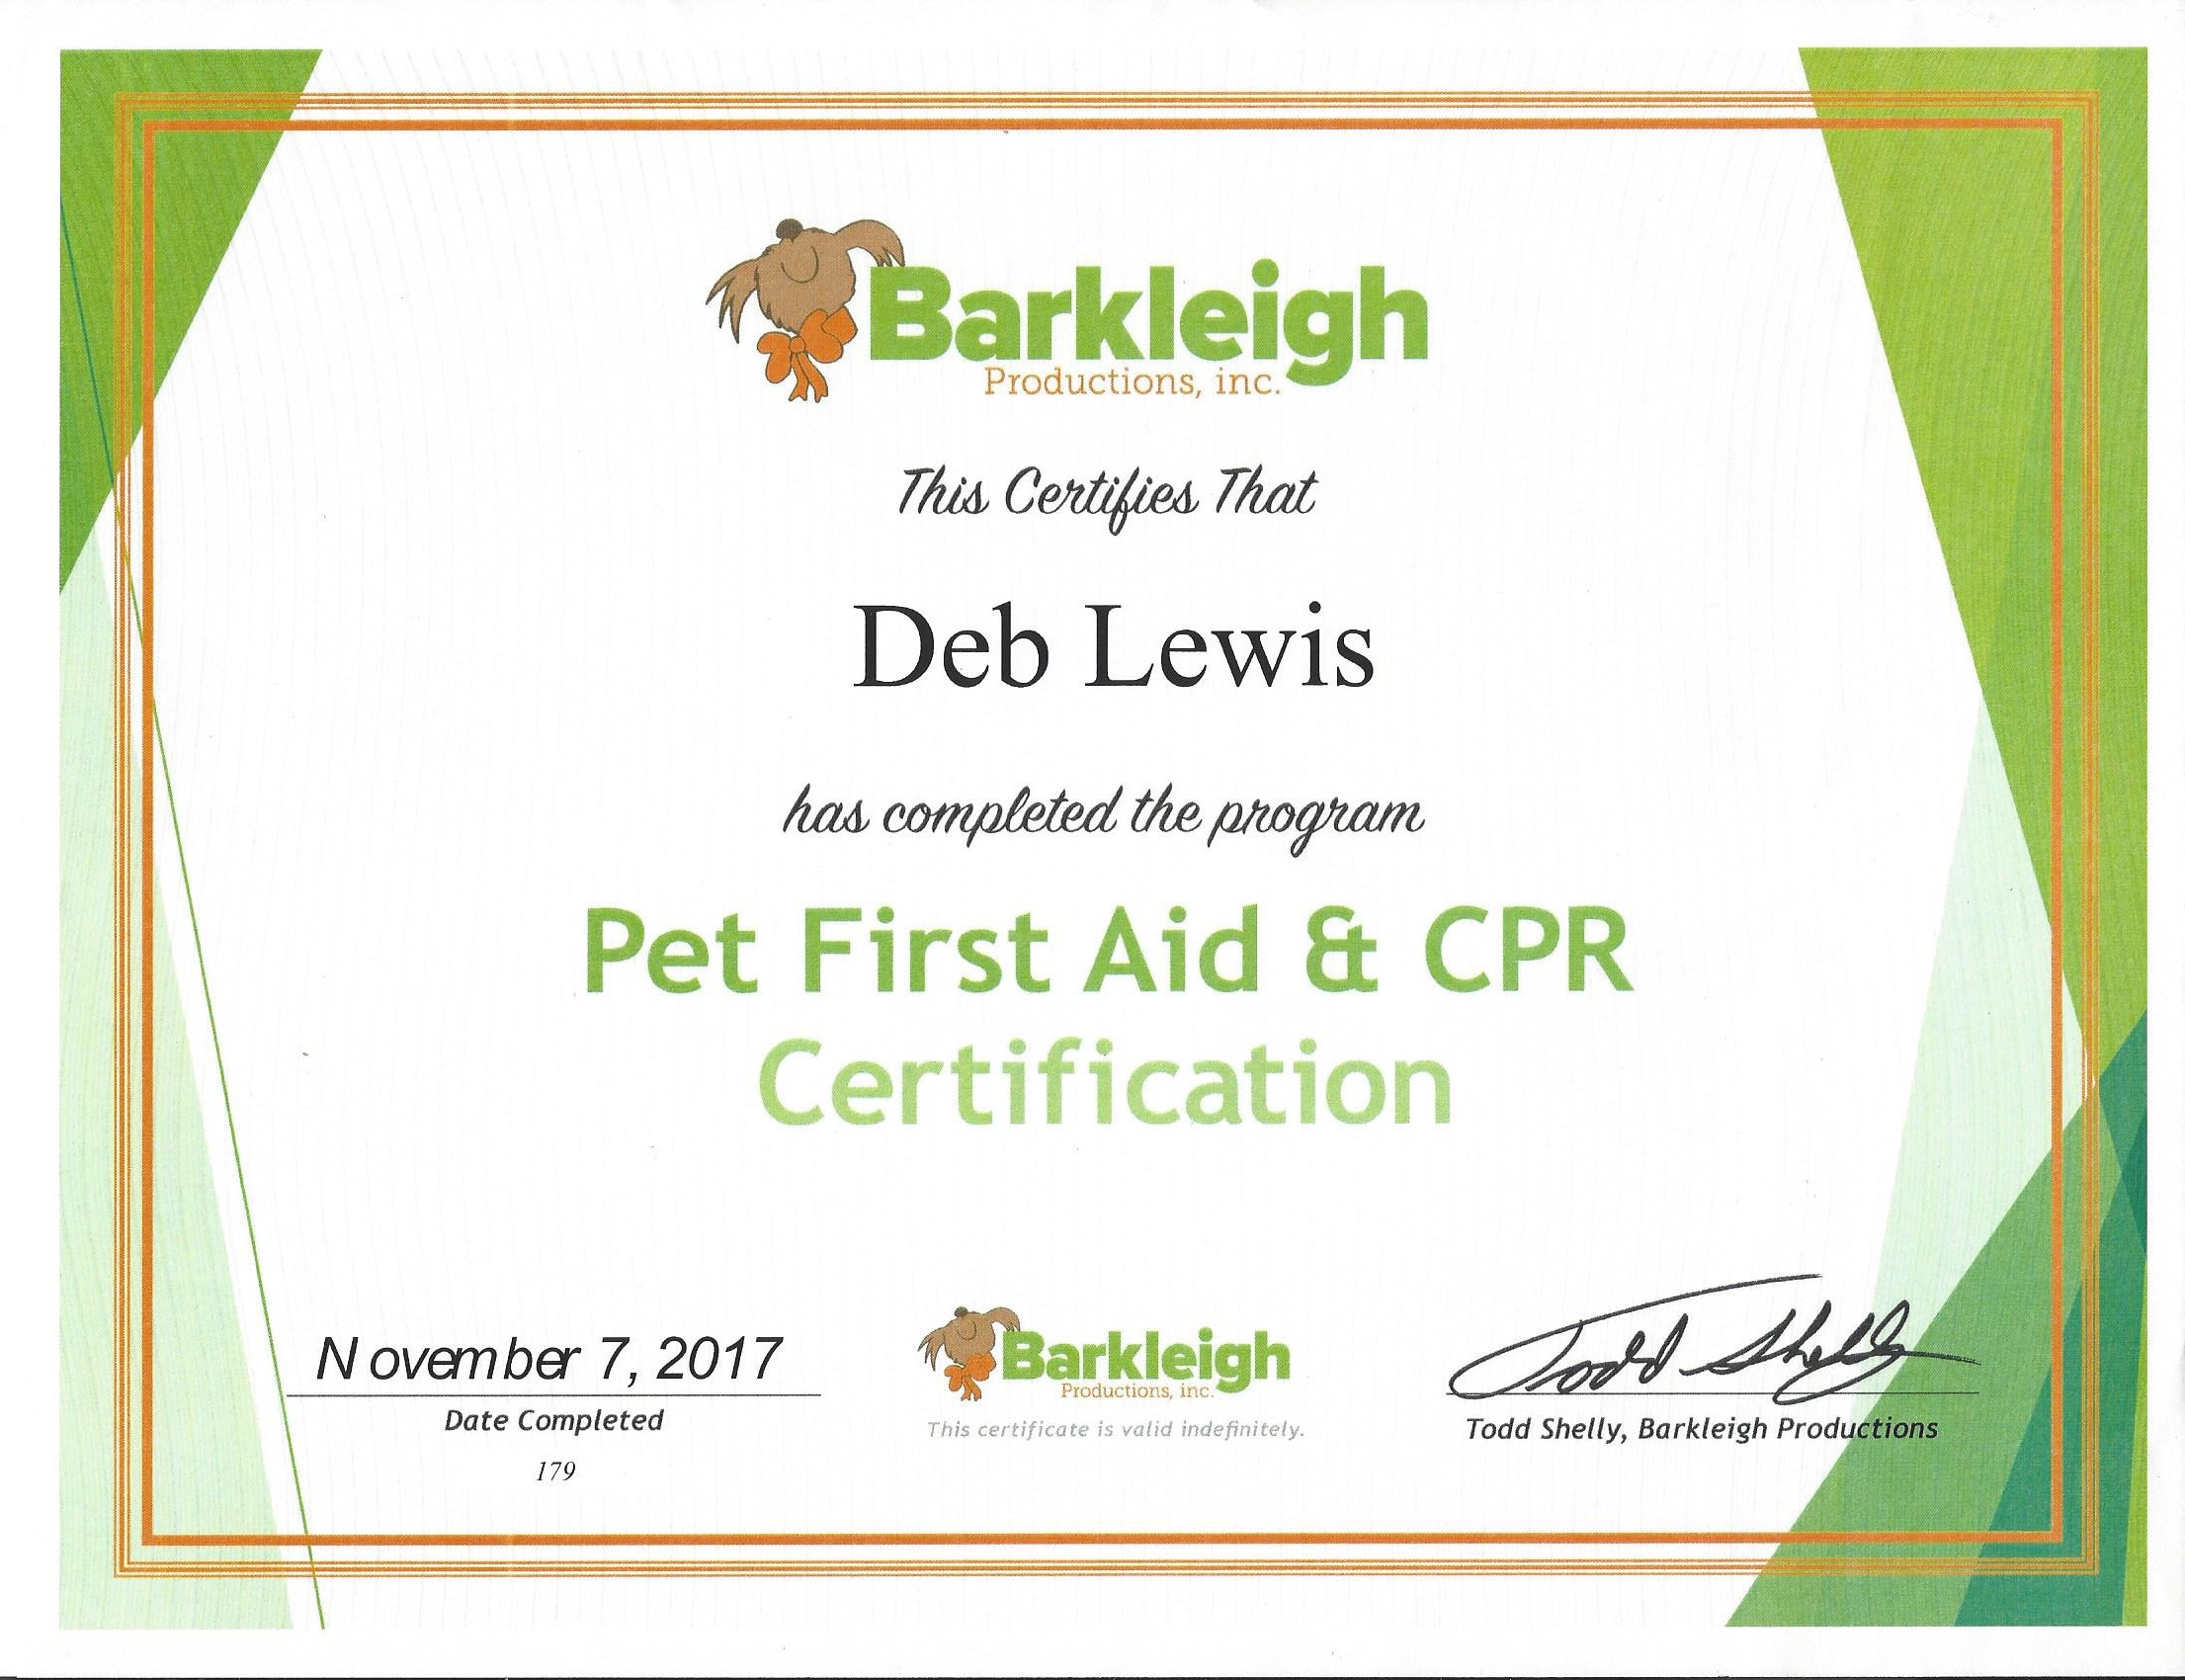 Luxury collection of pet cpr certification business cards and resume dogs bay from pet cpr certification image source dogsbay xflitez Images